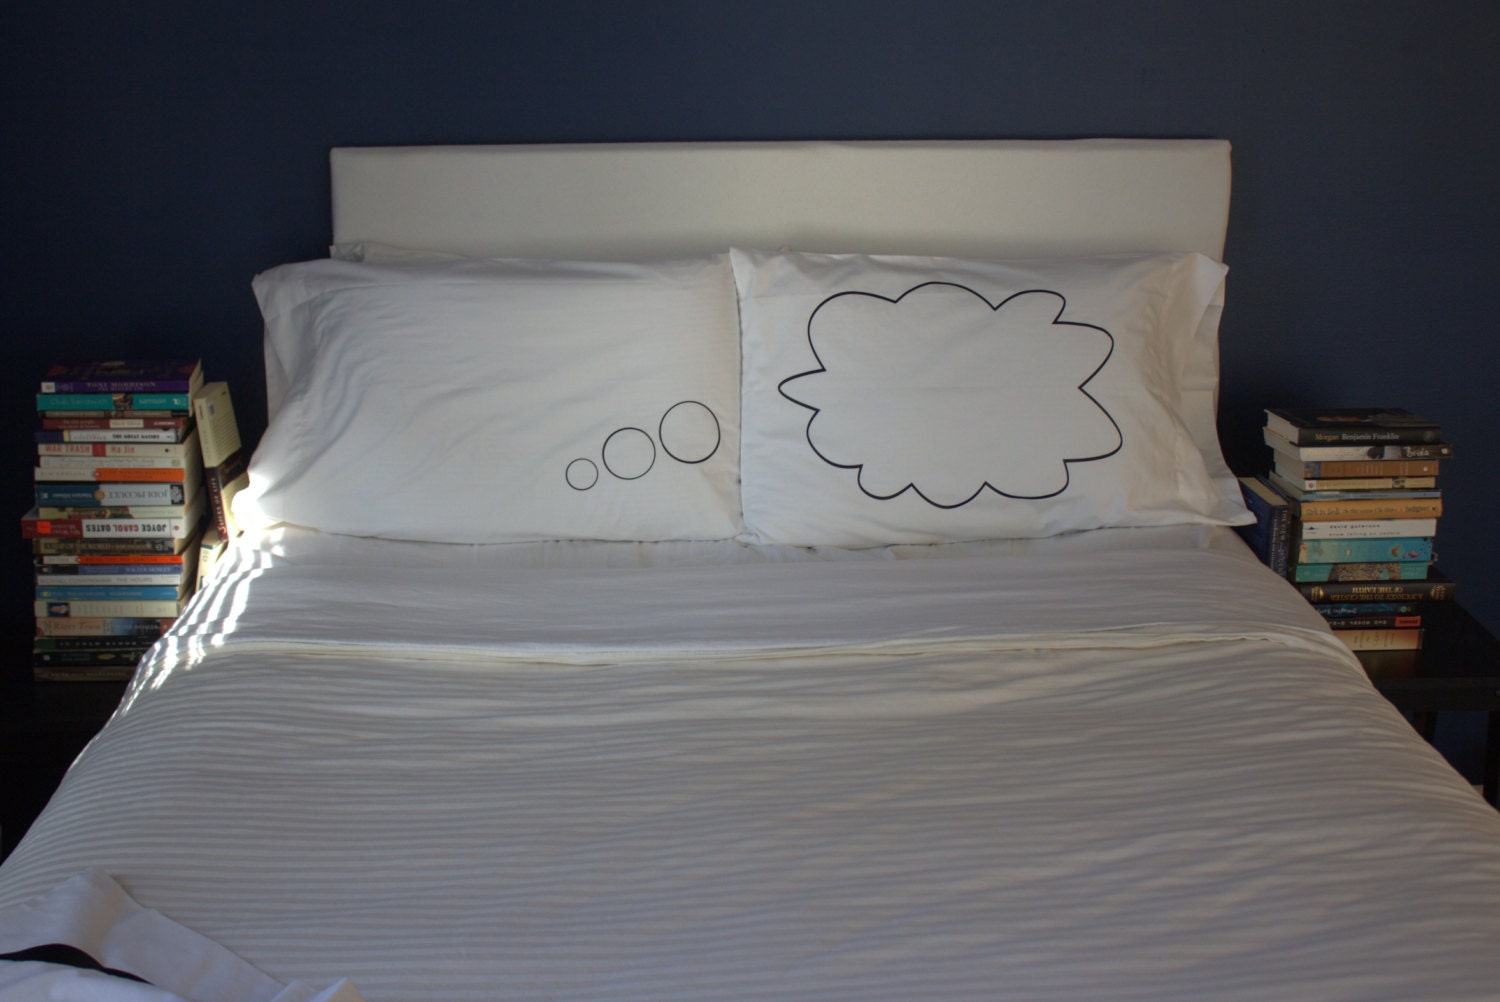 Unique Thought Bubble Pillow Case For Weddings, Couples Love Pillowcases - OSusannahs